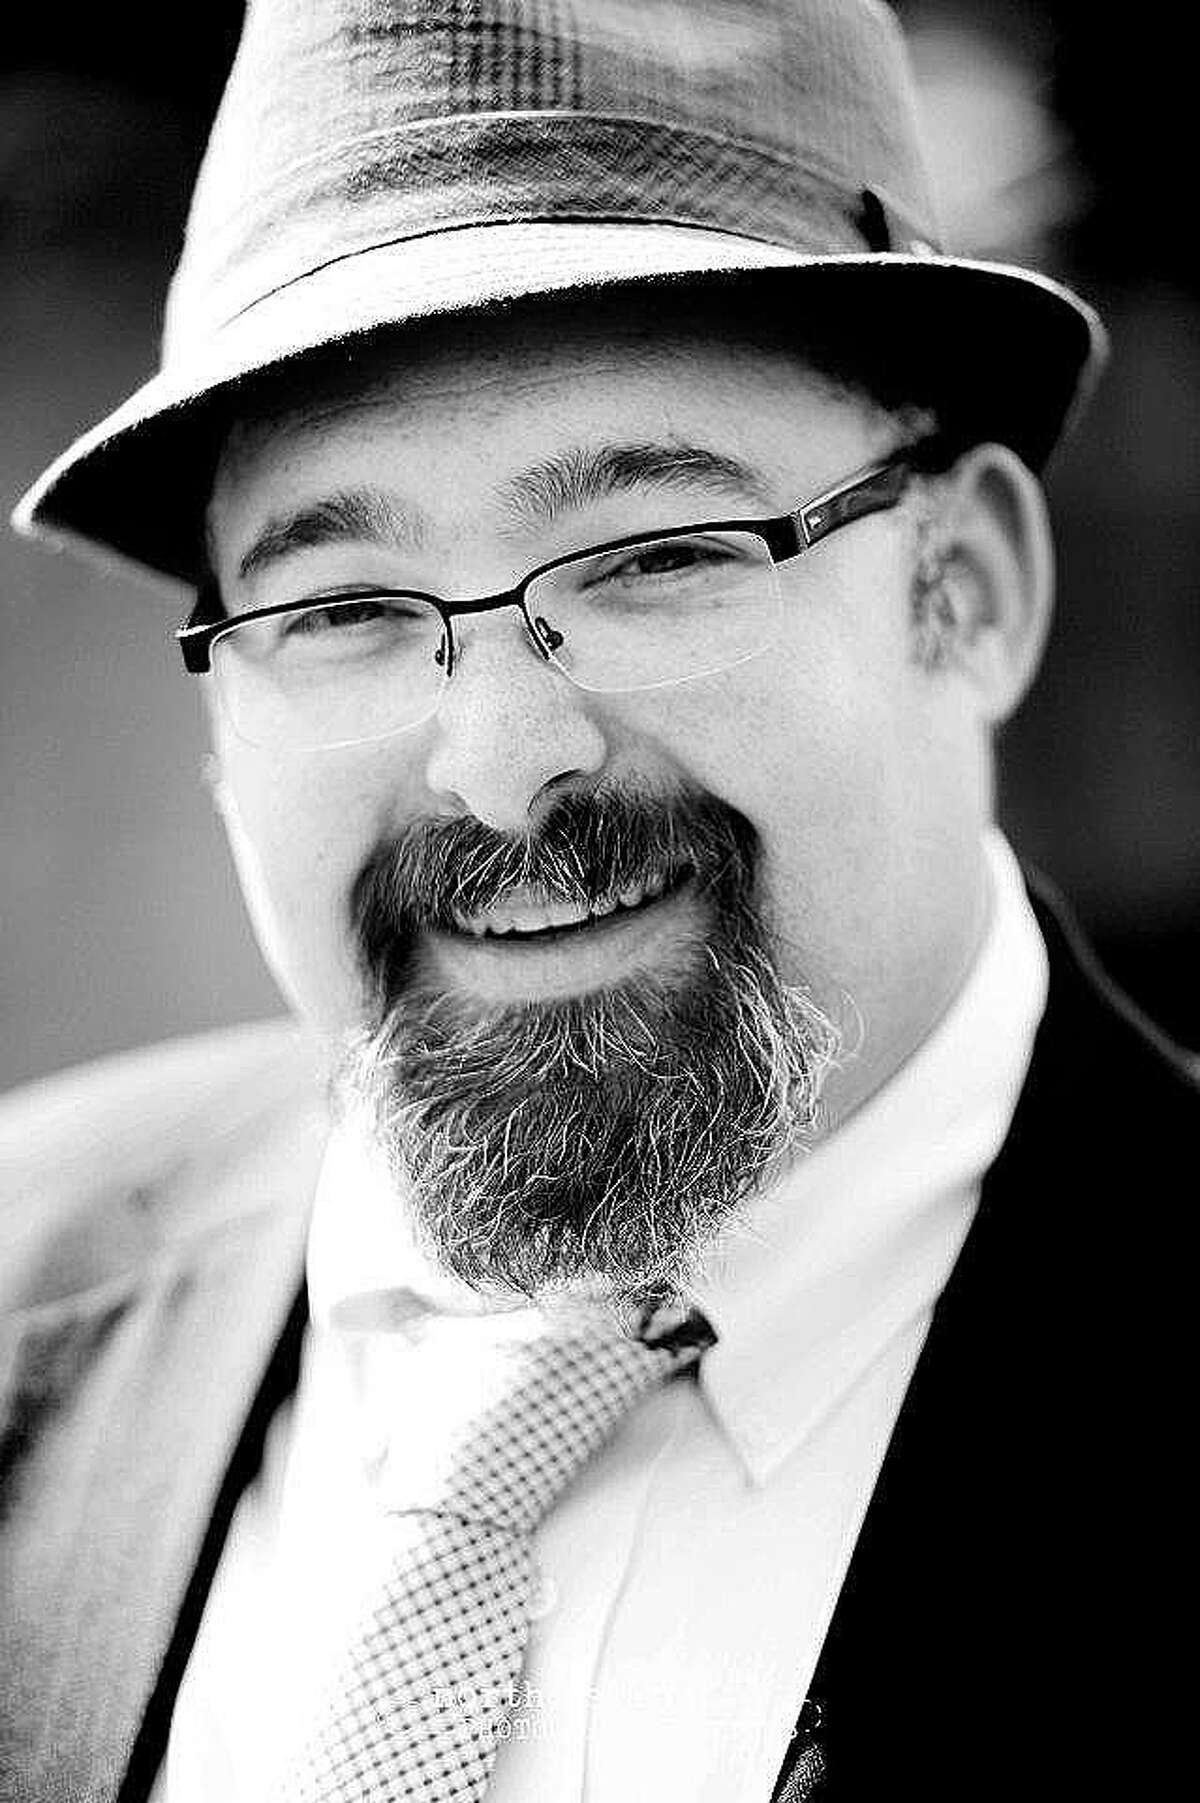 Rabbi Jonathan S. Siger heads the Congregation Jewish Community North in Spring.